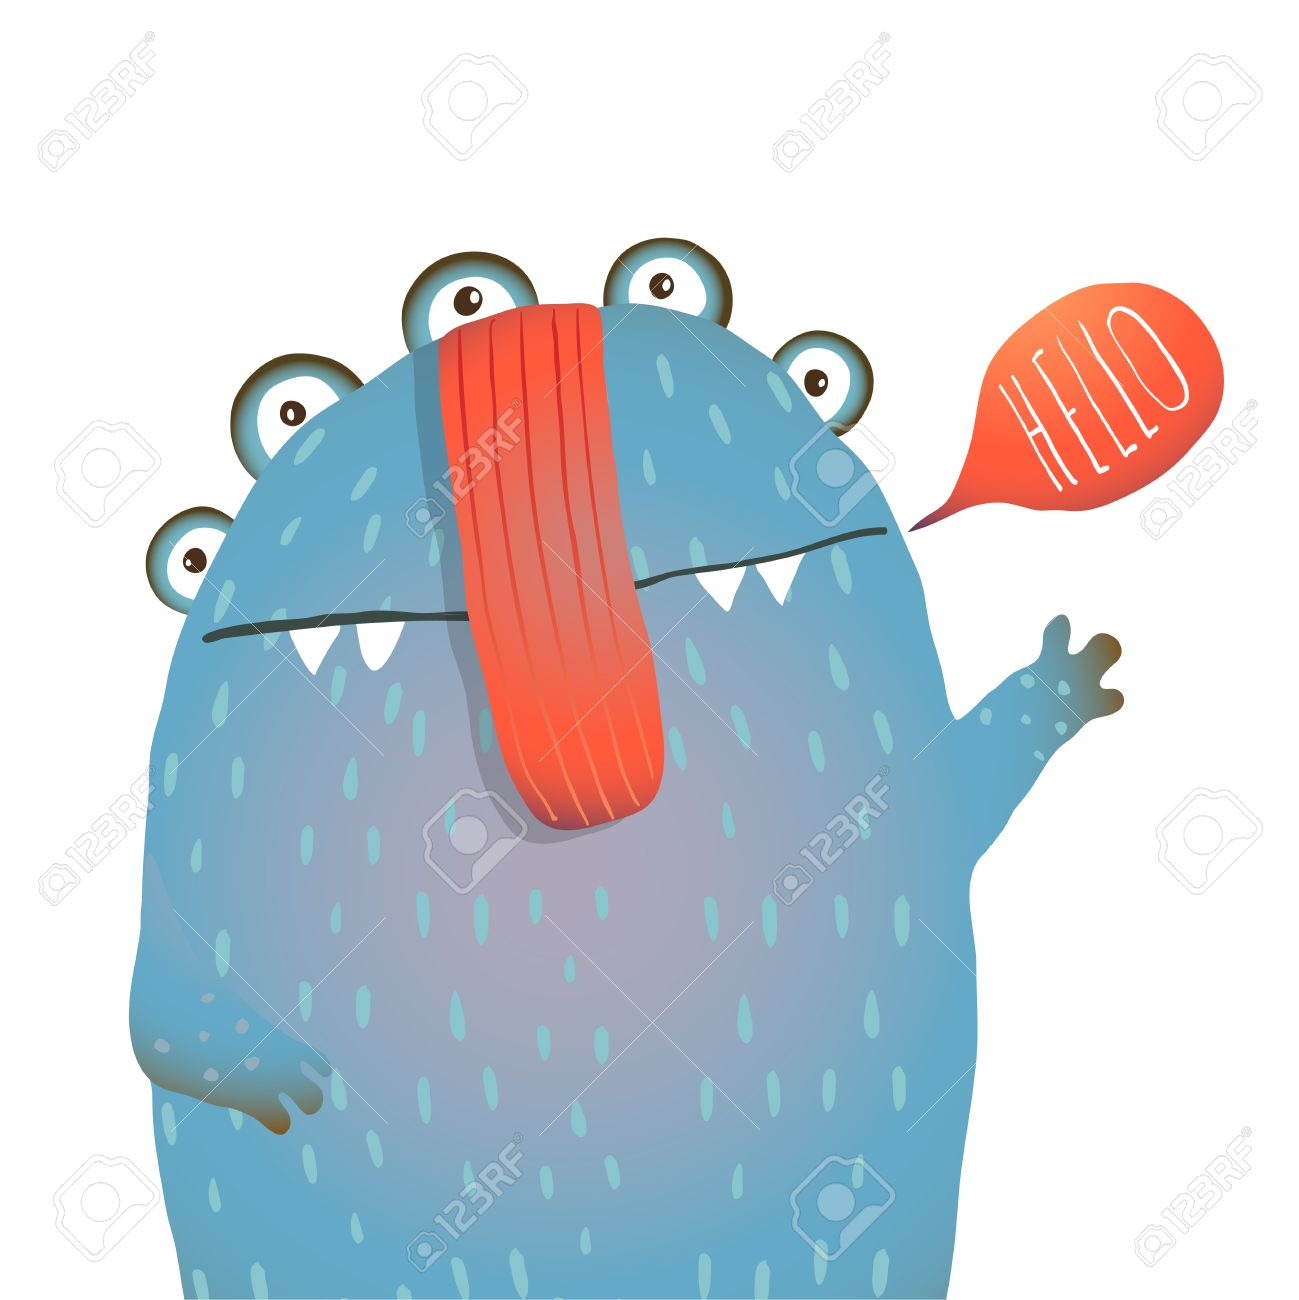 Kind and Cute Funny Monster Saying Hello Waving. Colorful hand drawn illustration for kids of cute creature. Vector drawing. - 43615898